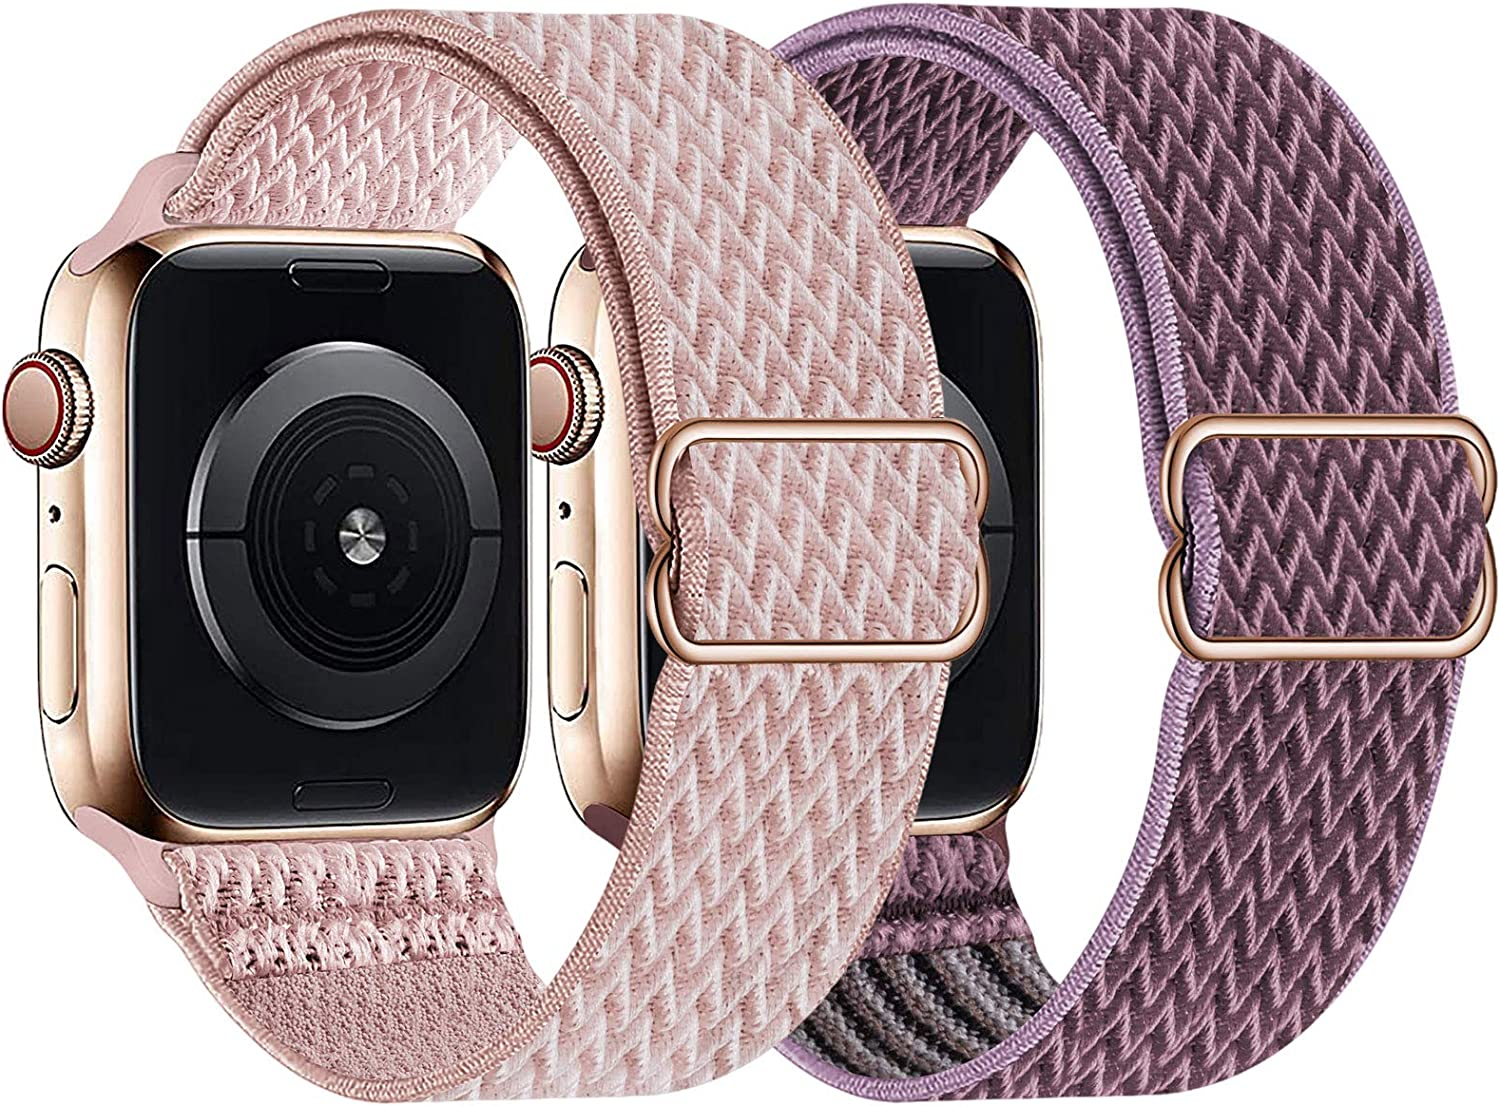 UHKZ 2 Pack Stretchy Solo Loop Compatible with Apple Watch Bands 38mm 40mm 42mm 44mm,Adjustable Braided Sport Elastic Nylon Wristband for iWatch Series 6/SE/5/4/3/2/1